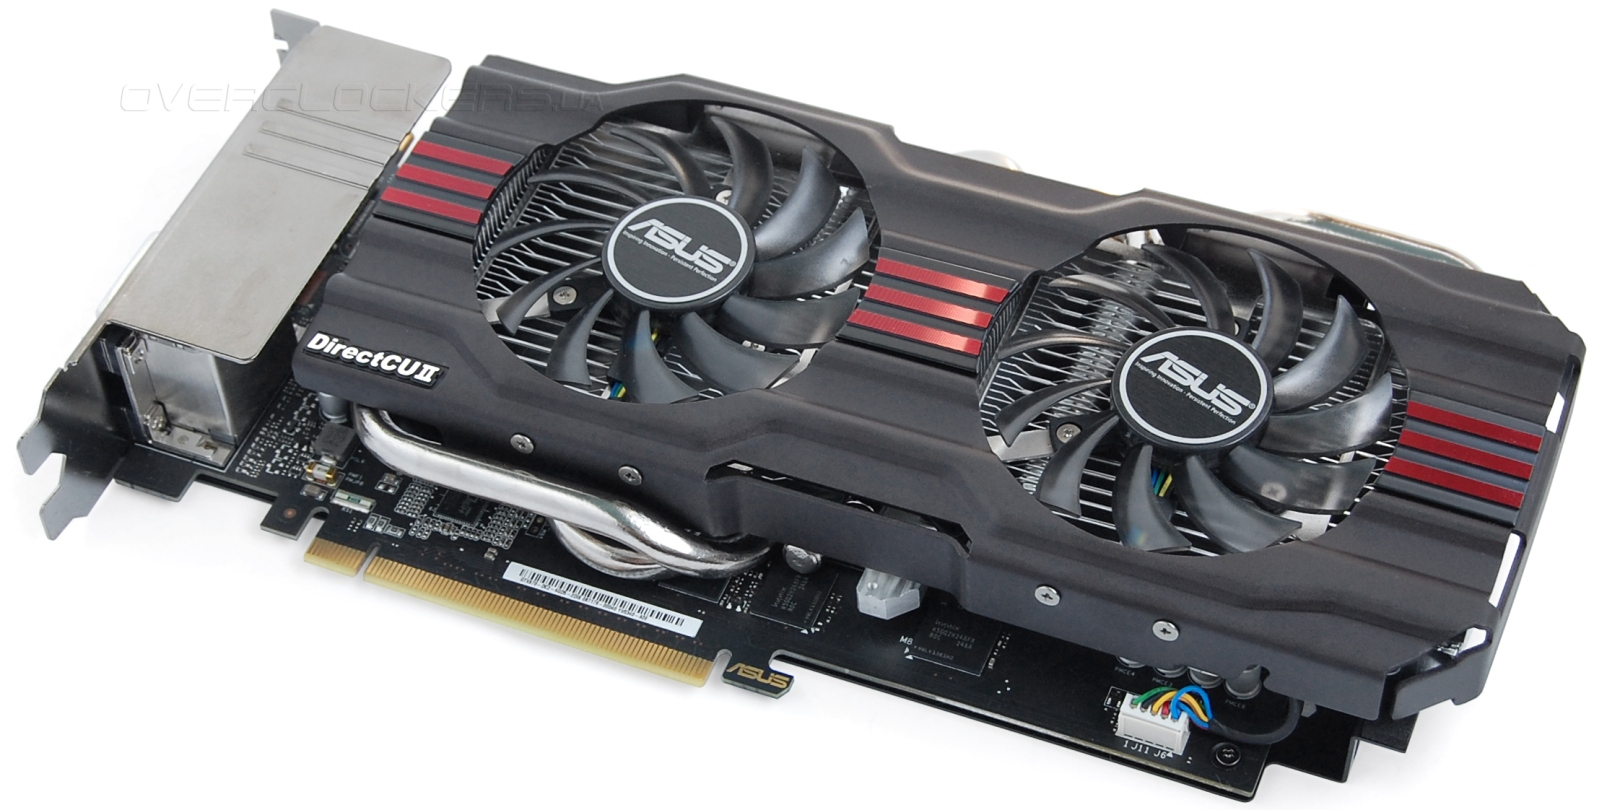 ASUS GTX670-DC2-2GD5 NVIDIA Graphics Update